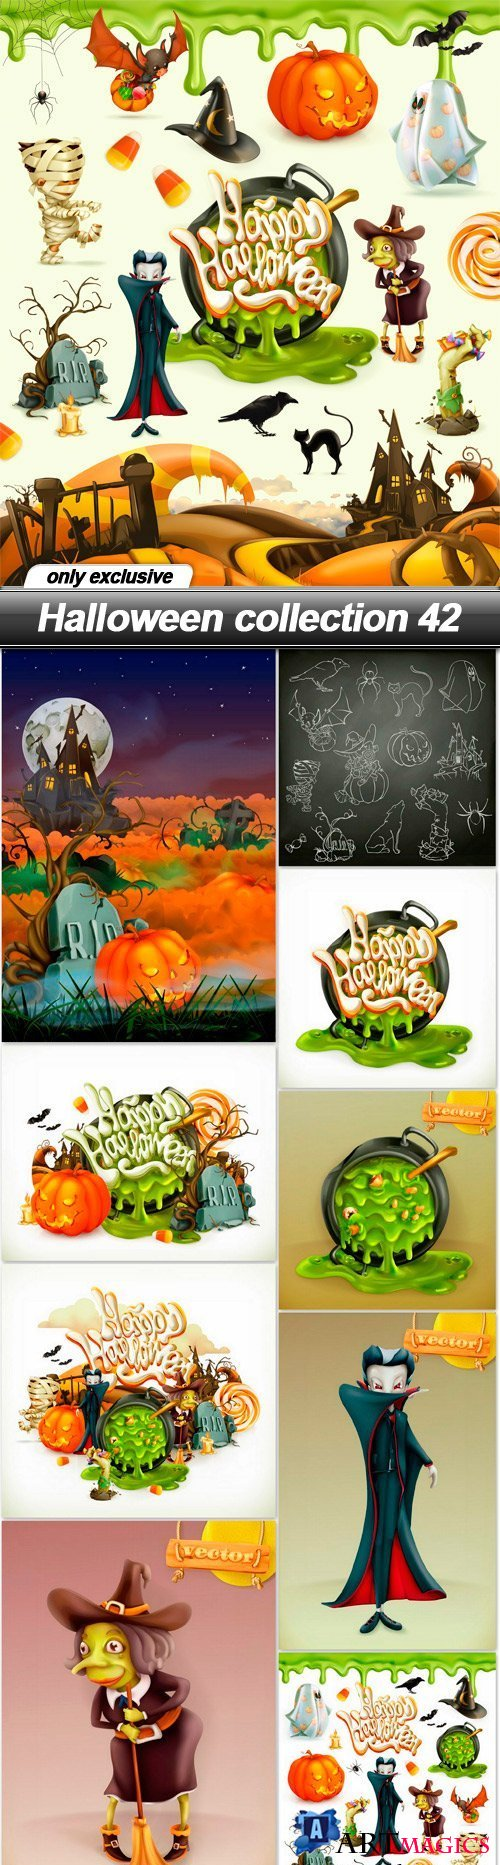 Halloween collection 42 - 10 EPS